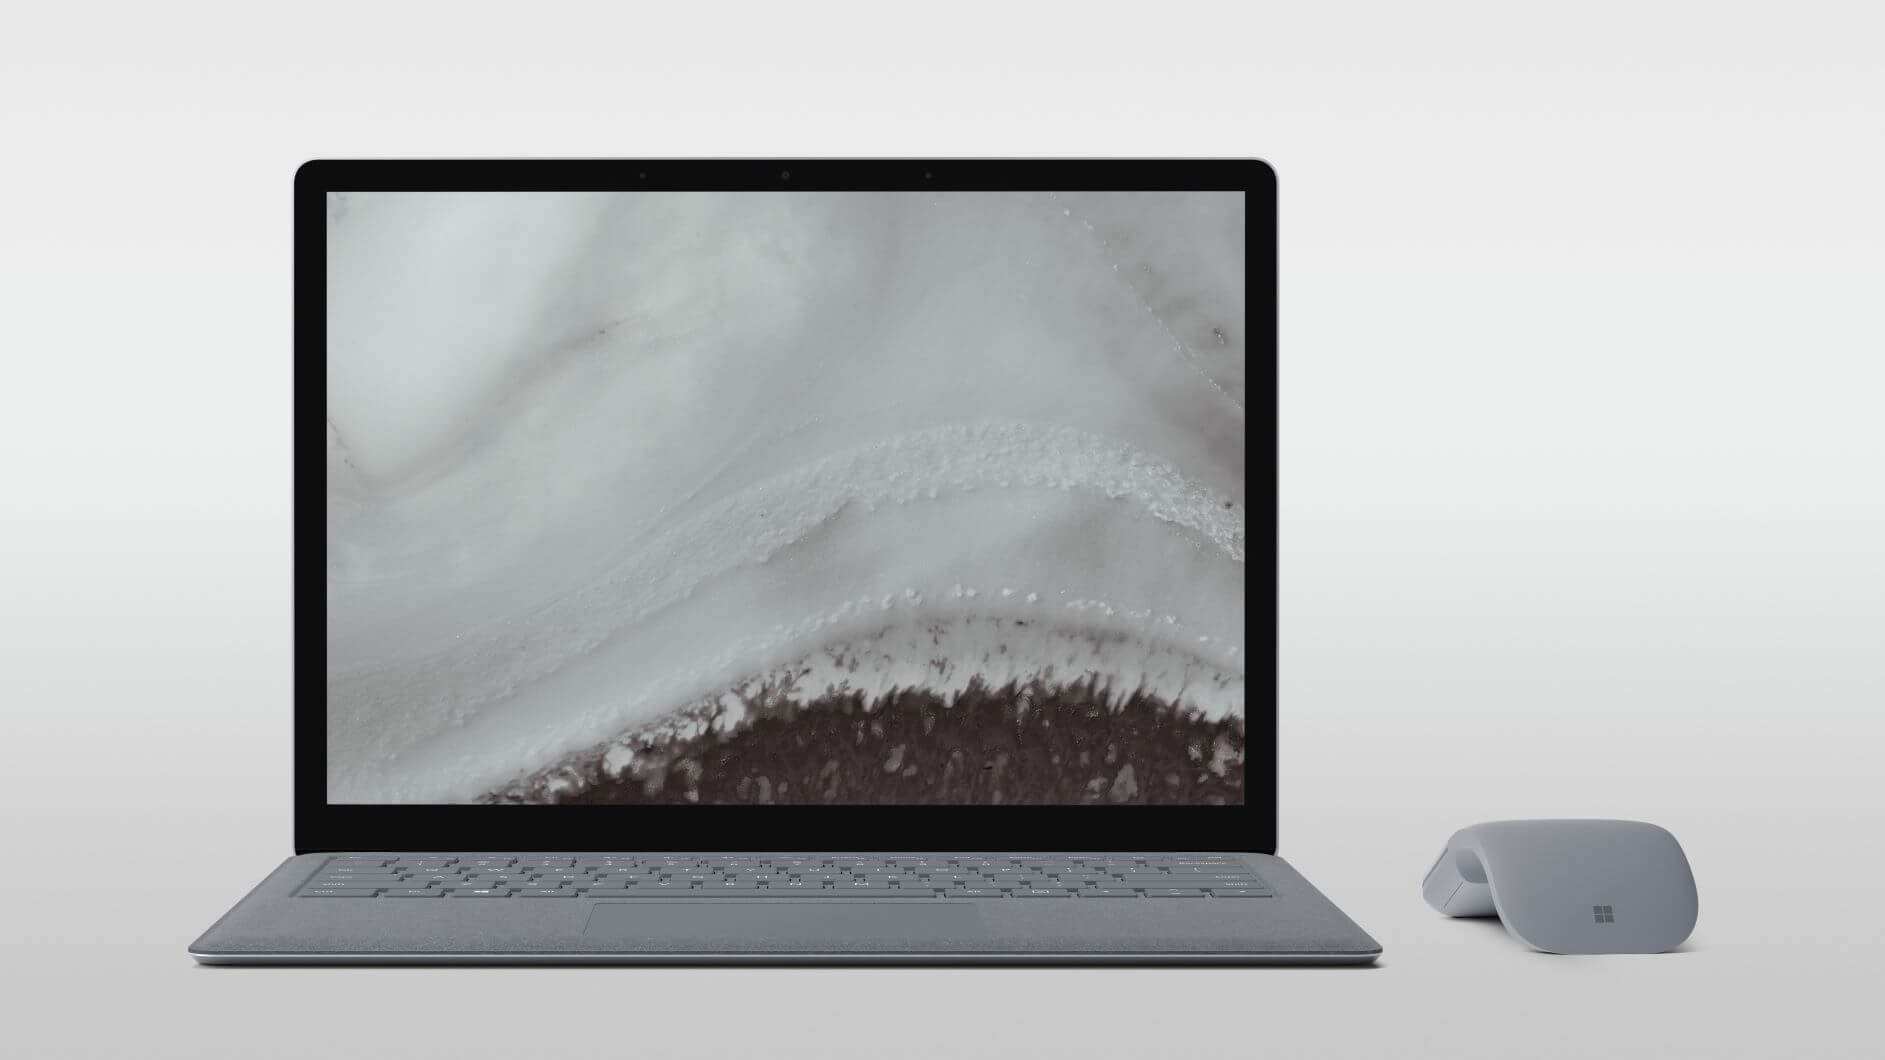 Microsoft unveils new Surface devices for UAE market